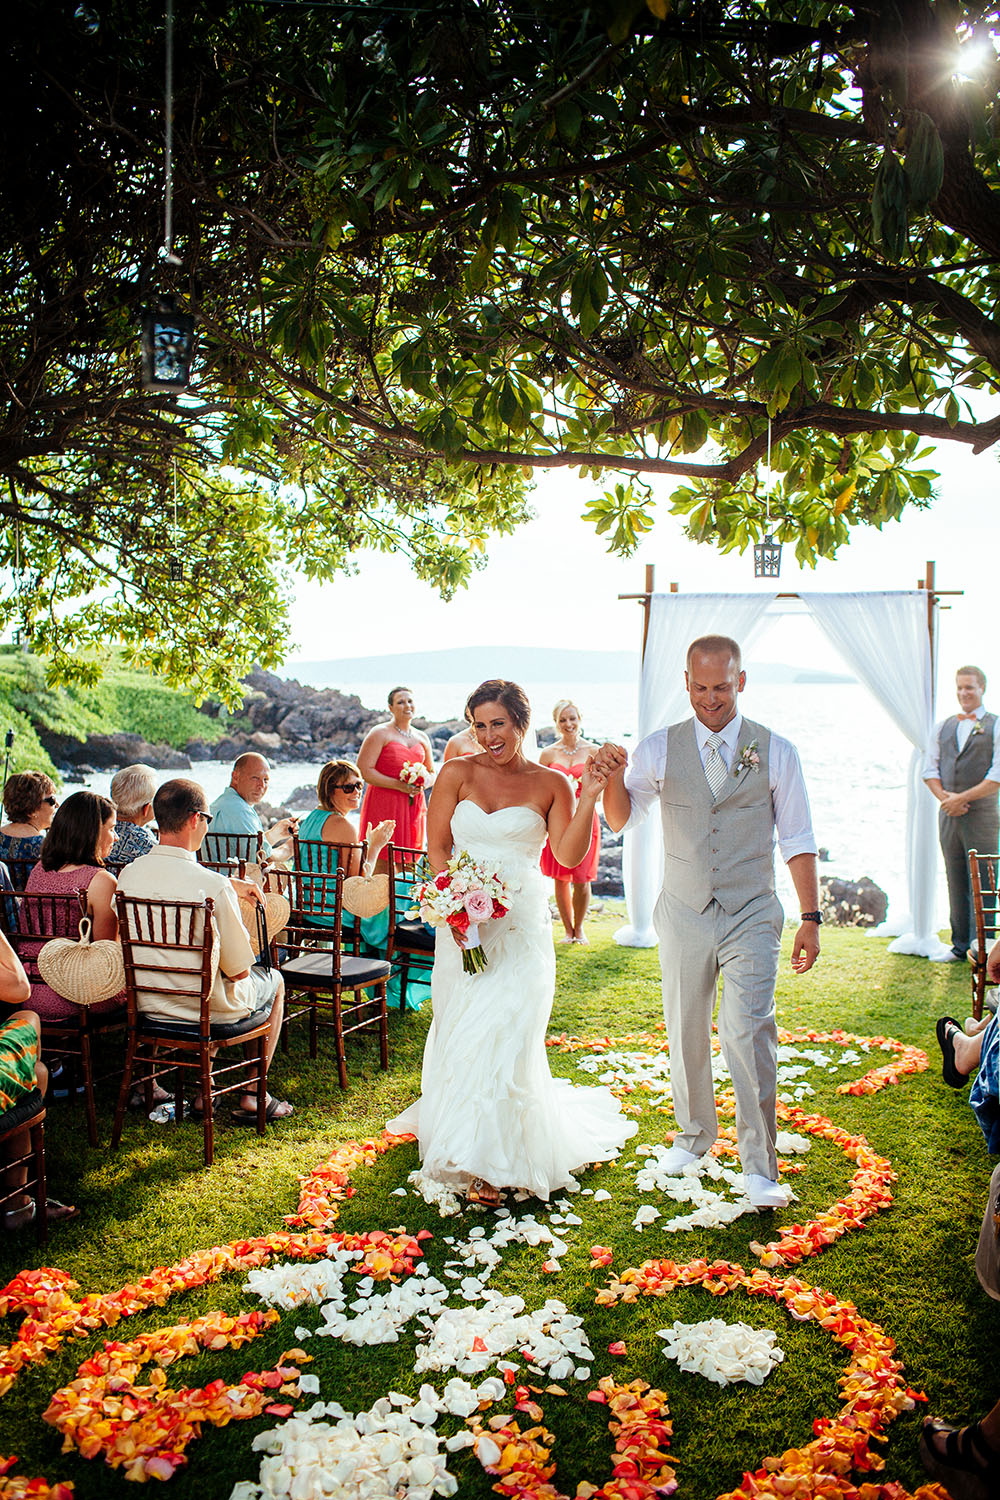 Tropical orange flower petal ceremony aisle runner by Bliss Wedding Design - Dmitri and Sandra Photography